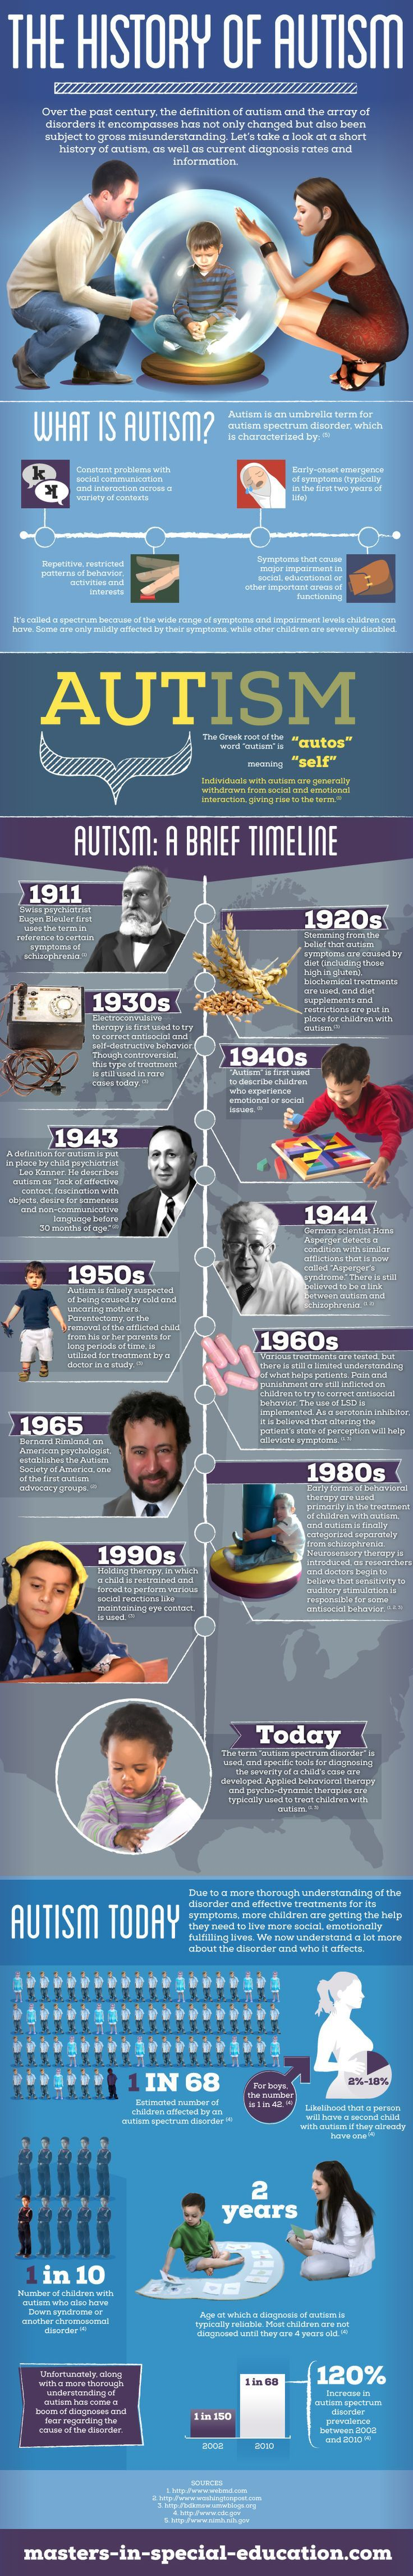 The History of Autism | Over the past century, the definition of autism and the array of disorders it encompasses has not only changed but also been subjects to gross misunderstanding. Let's take a look at a short history of autism, as well as current diagnosis rates and information. ♥ Help raise awareness by saving and sharing this infographic on autism. :)